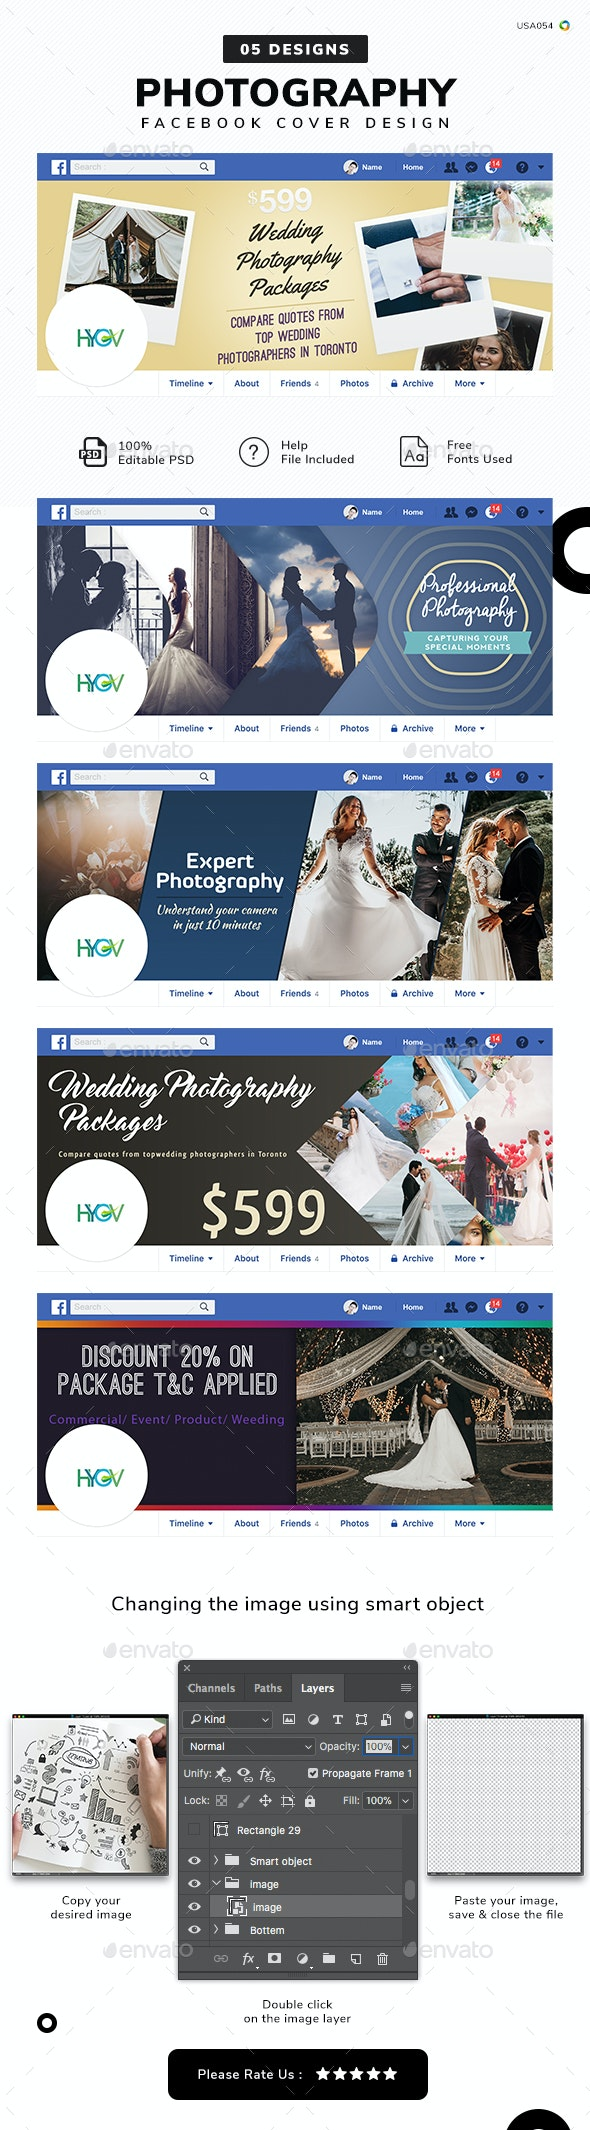 Photography Facebook Cover Templates - 05 Designs - Facebook Timeline Covers Social Media